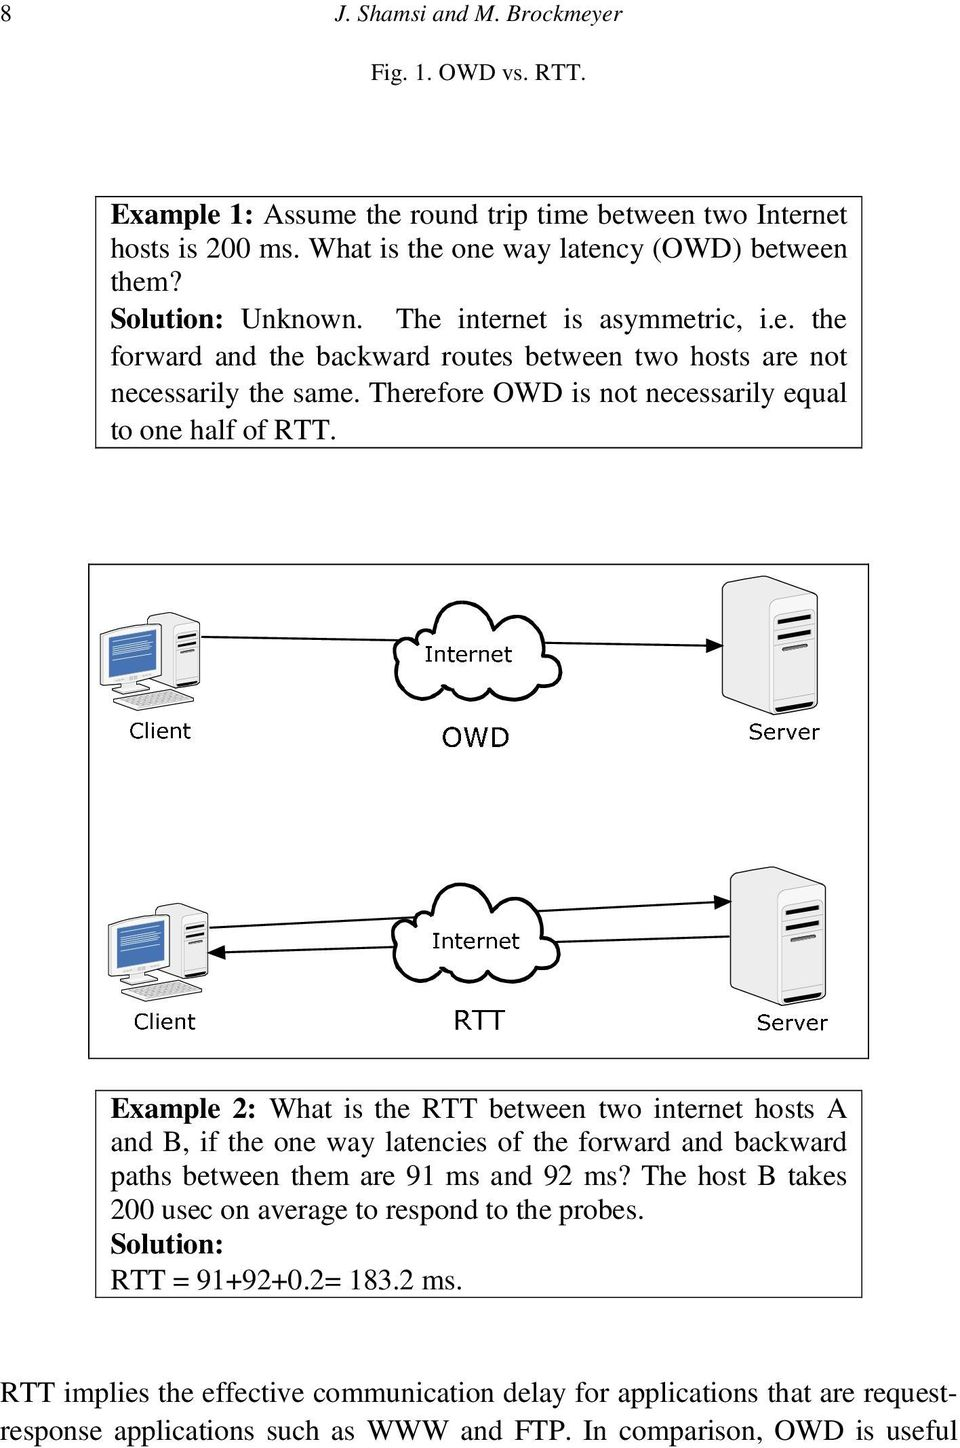 Example 2: What is the RTT between two internet hosts A and B, if the one way latencies of the forward and backward paths between them are 91 ms and 92 ms?